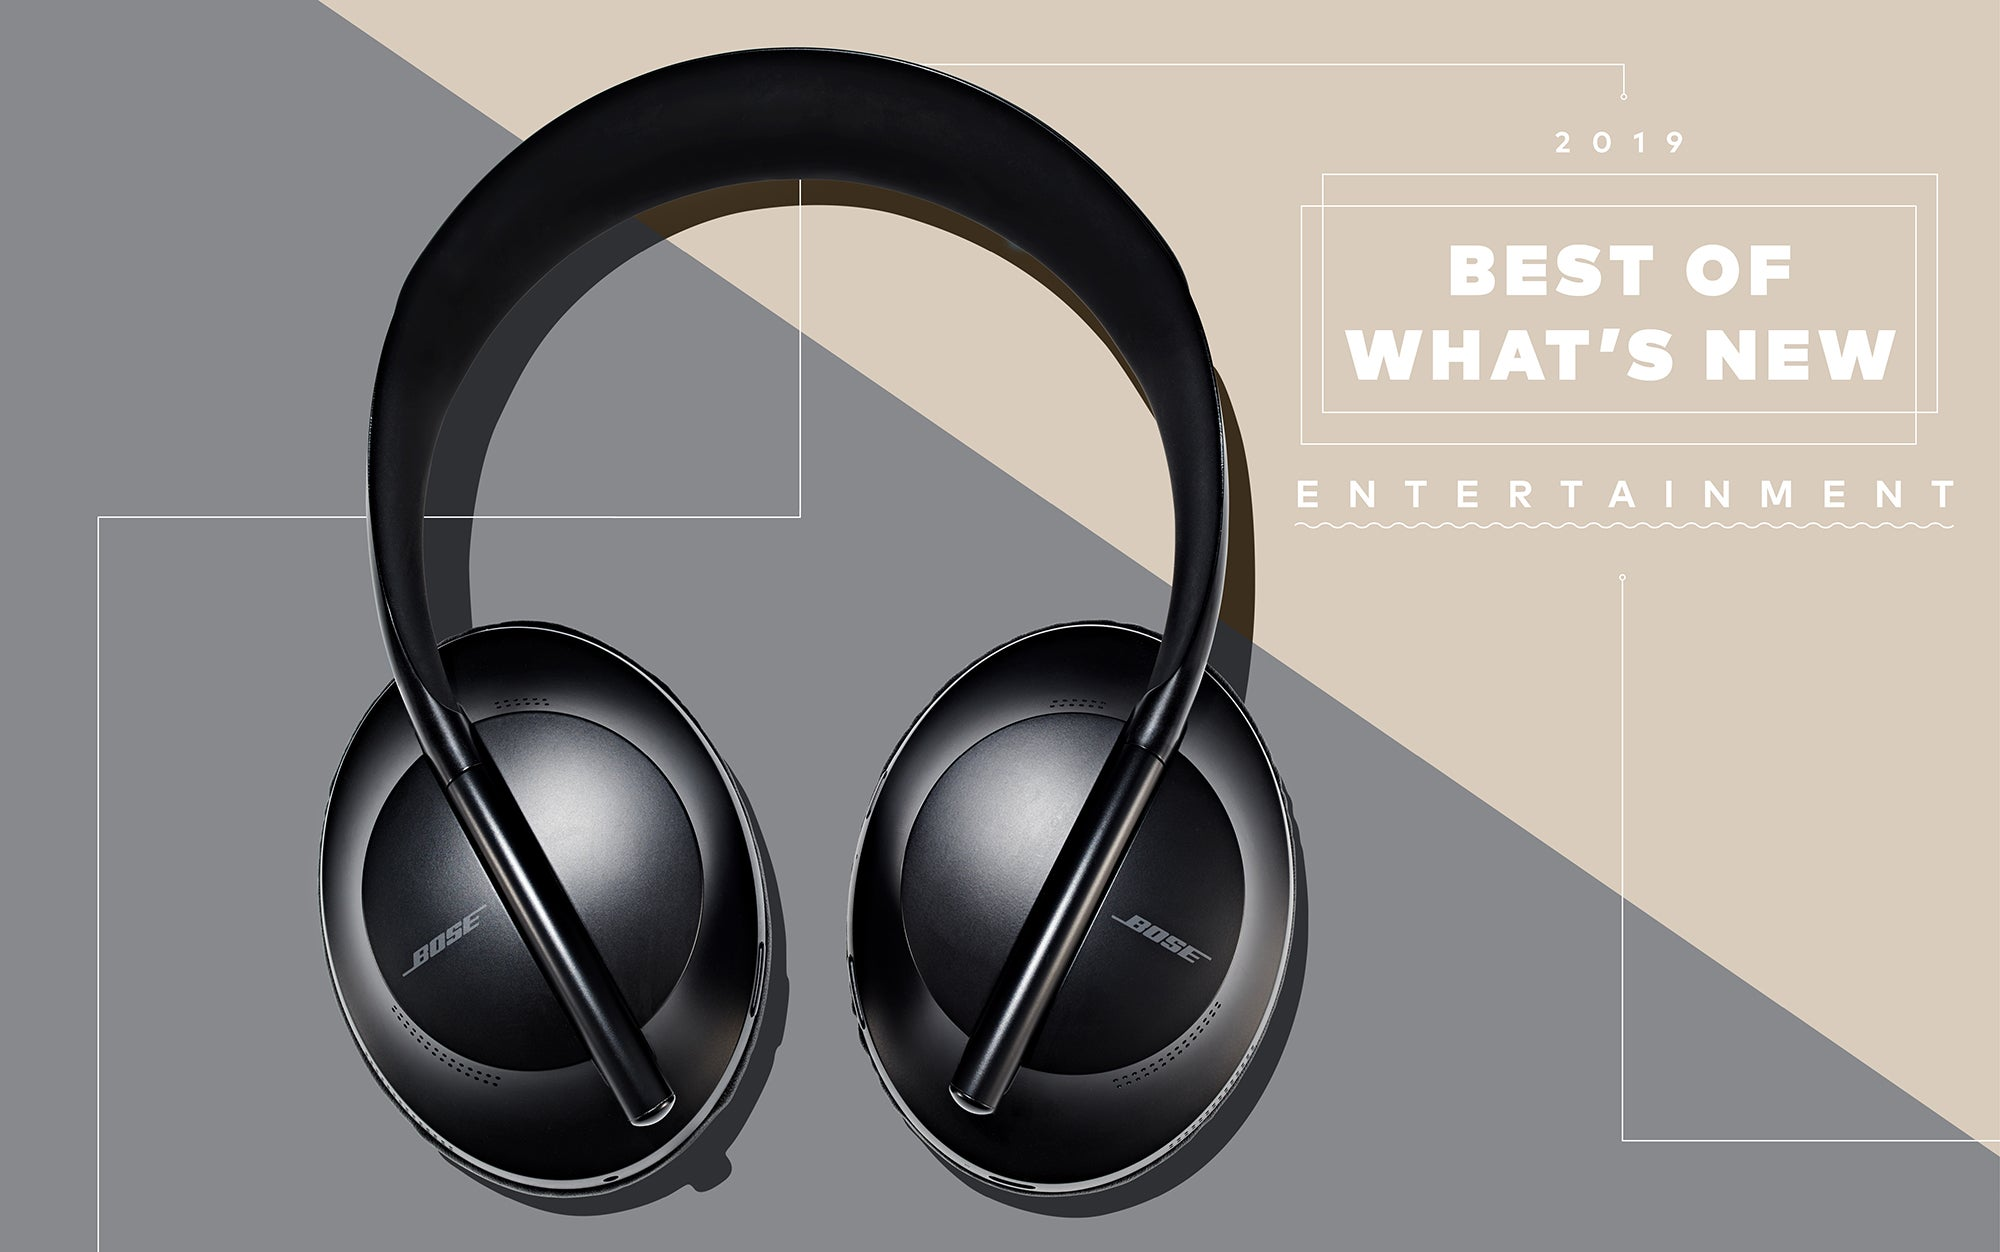 The best entertainment innovations of 2019